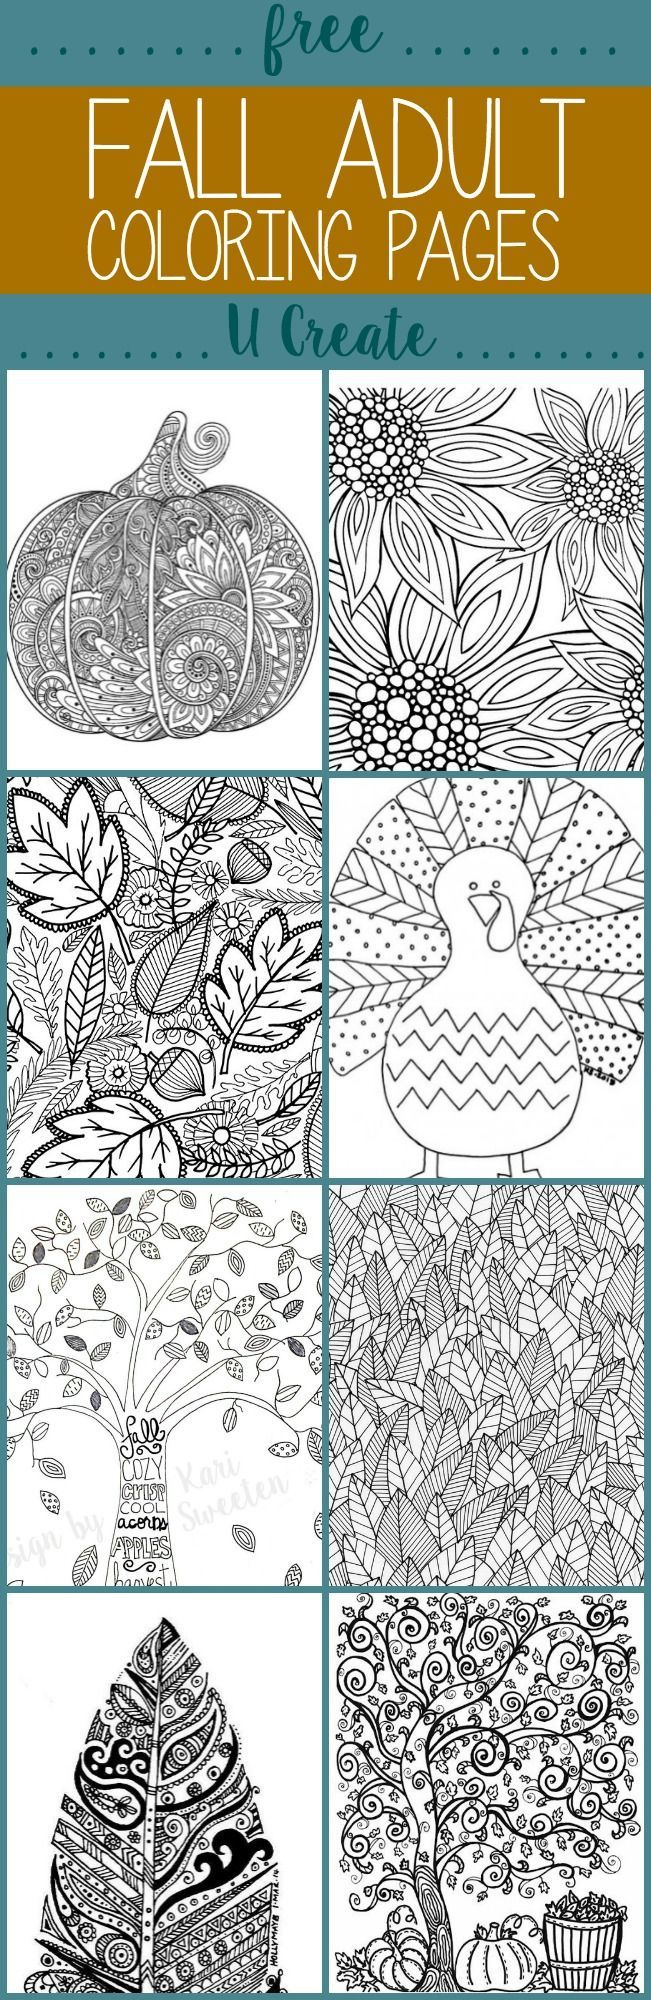 Layered pumpkin dessert recipe coloring adult coloring pages